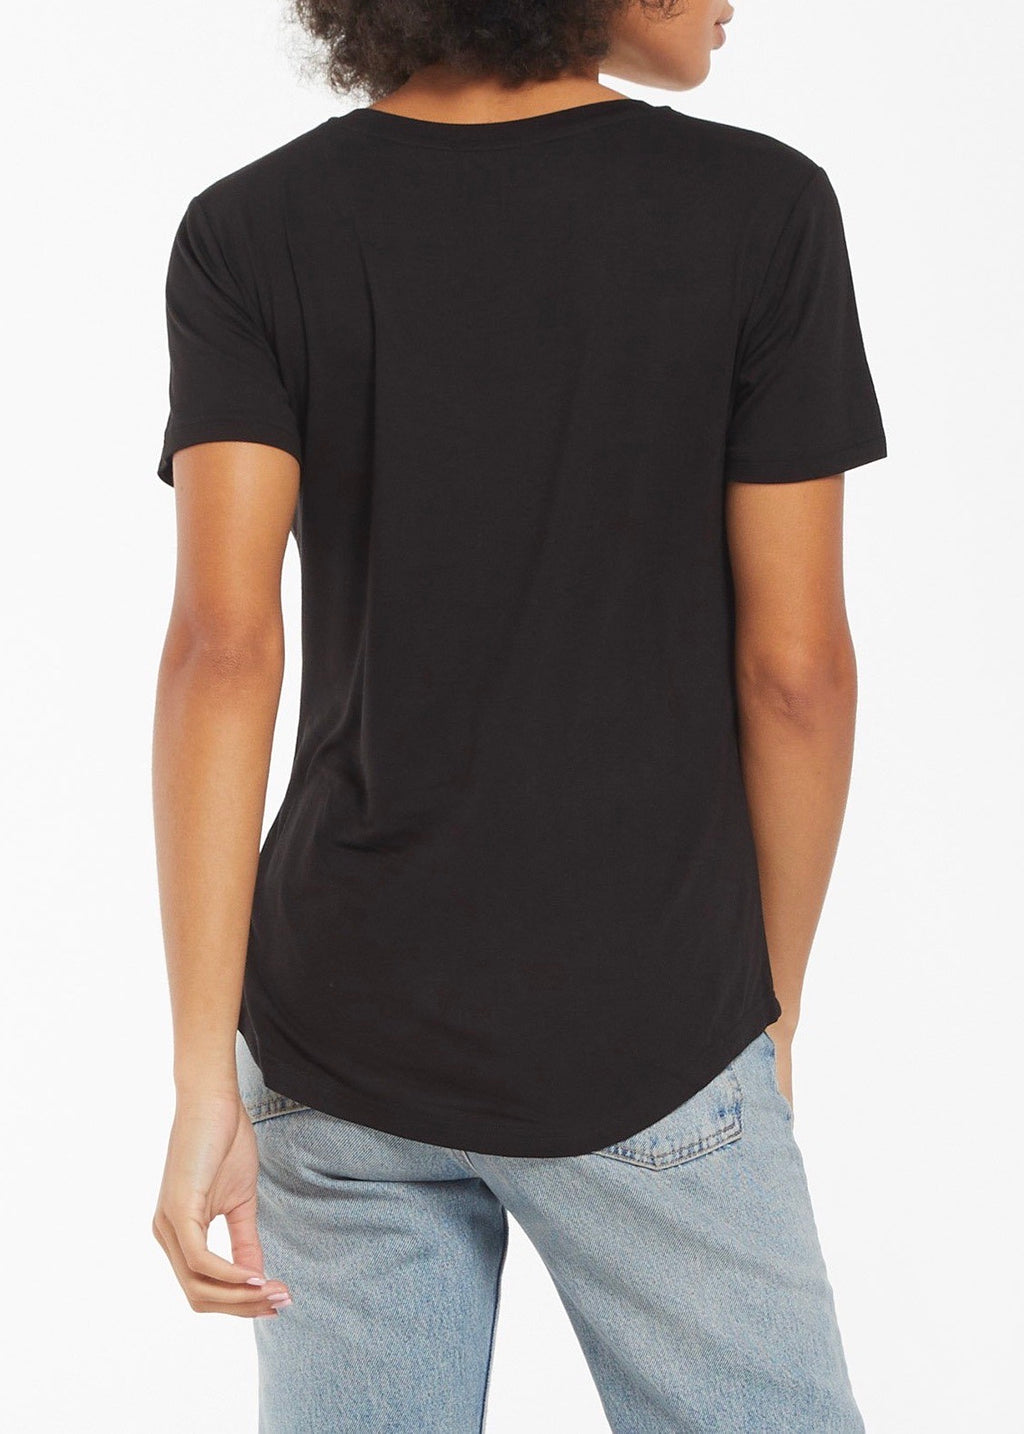 Lipa Sleek Tee